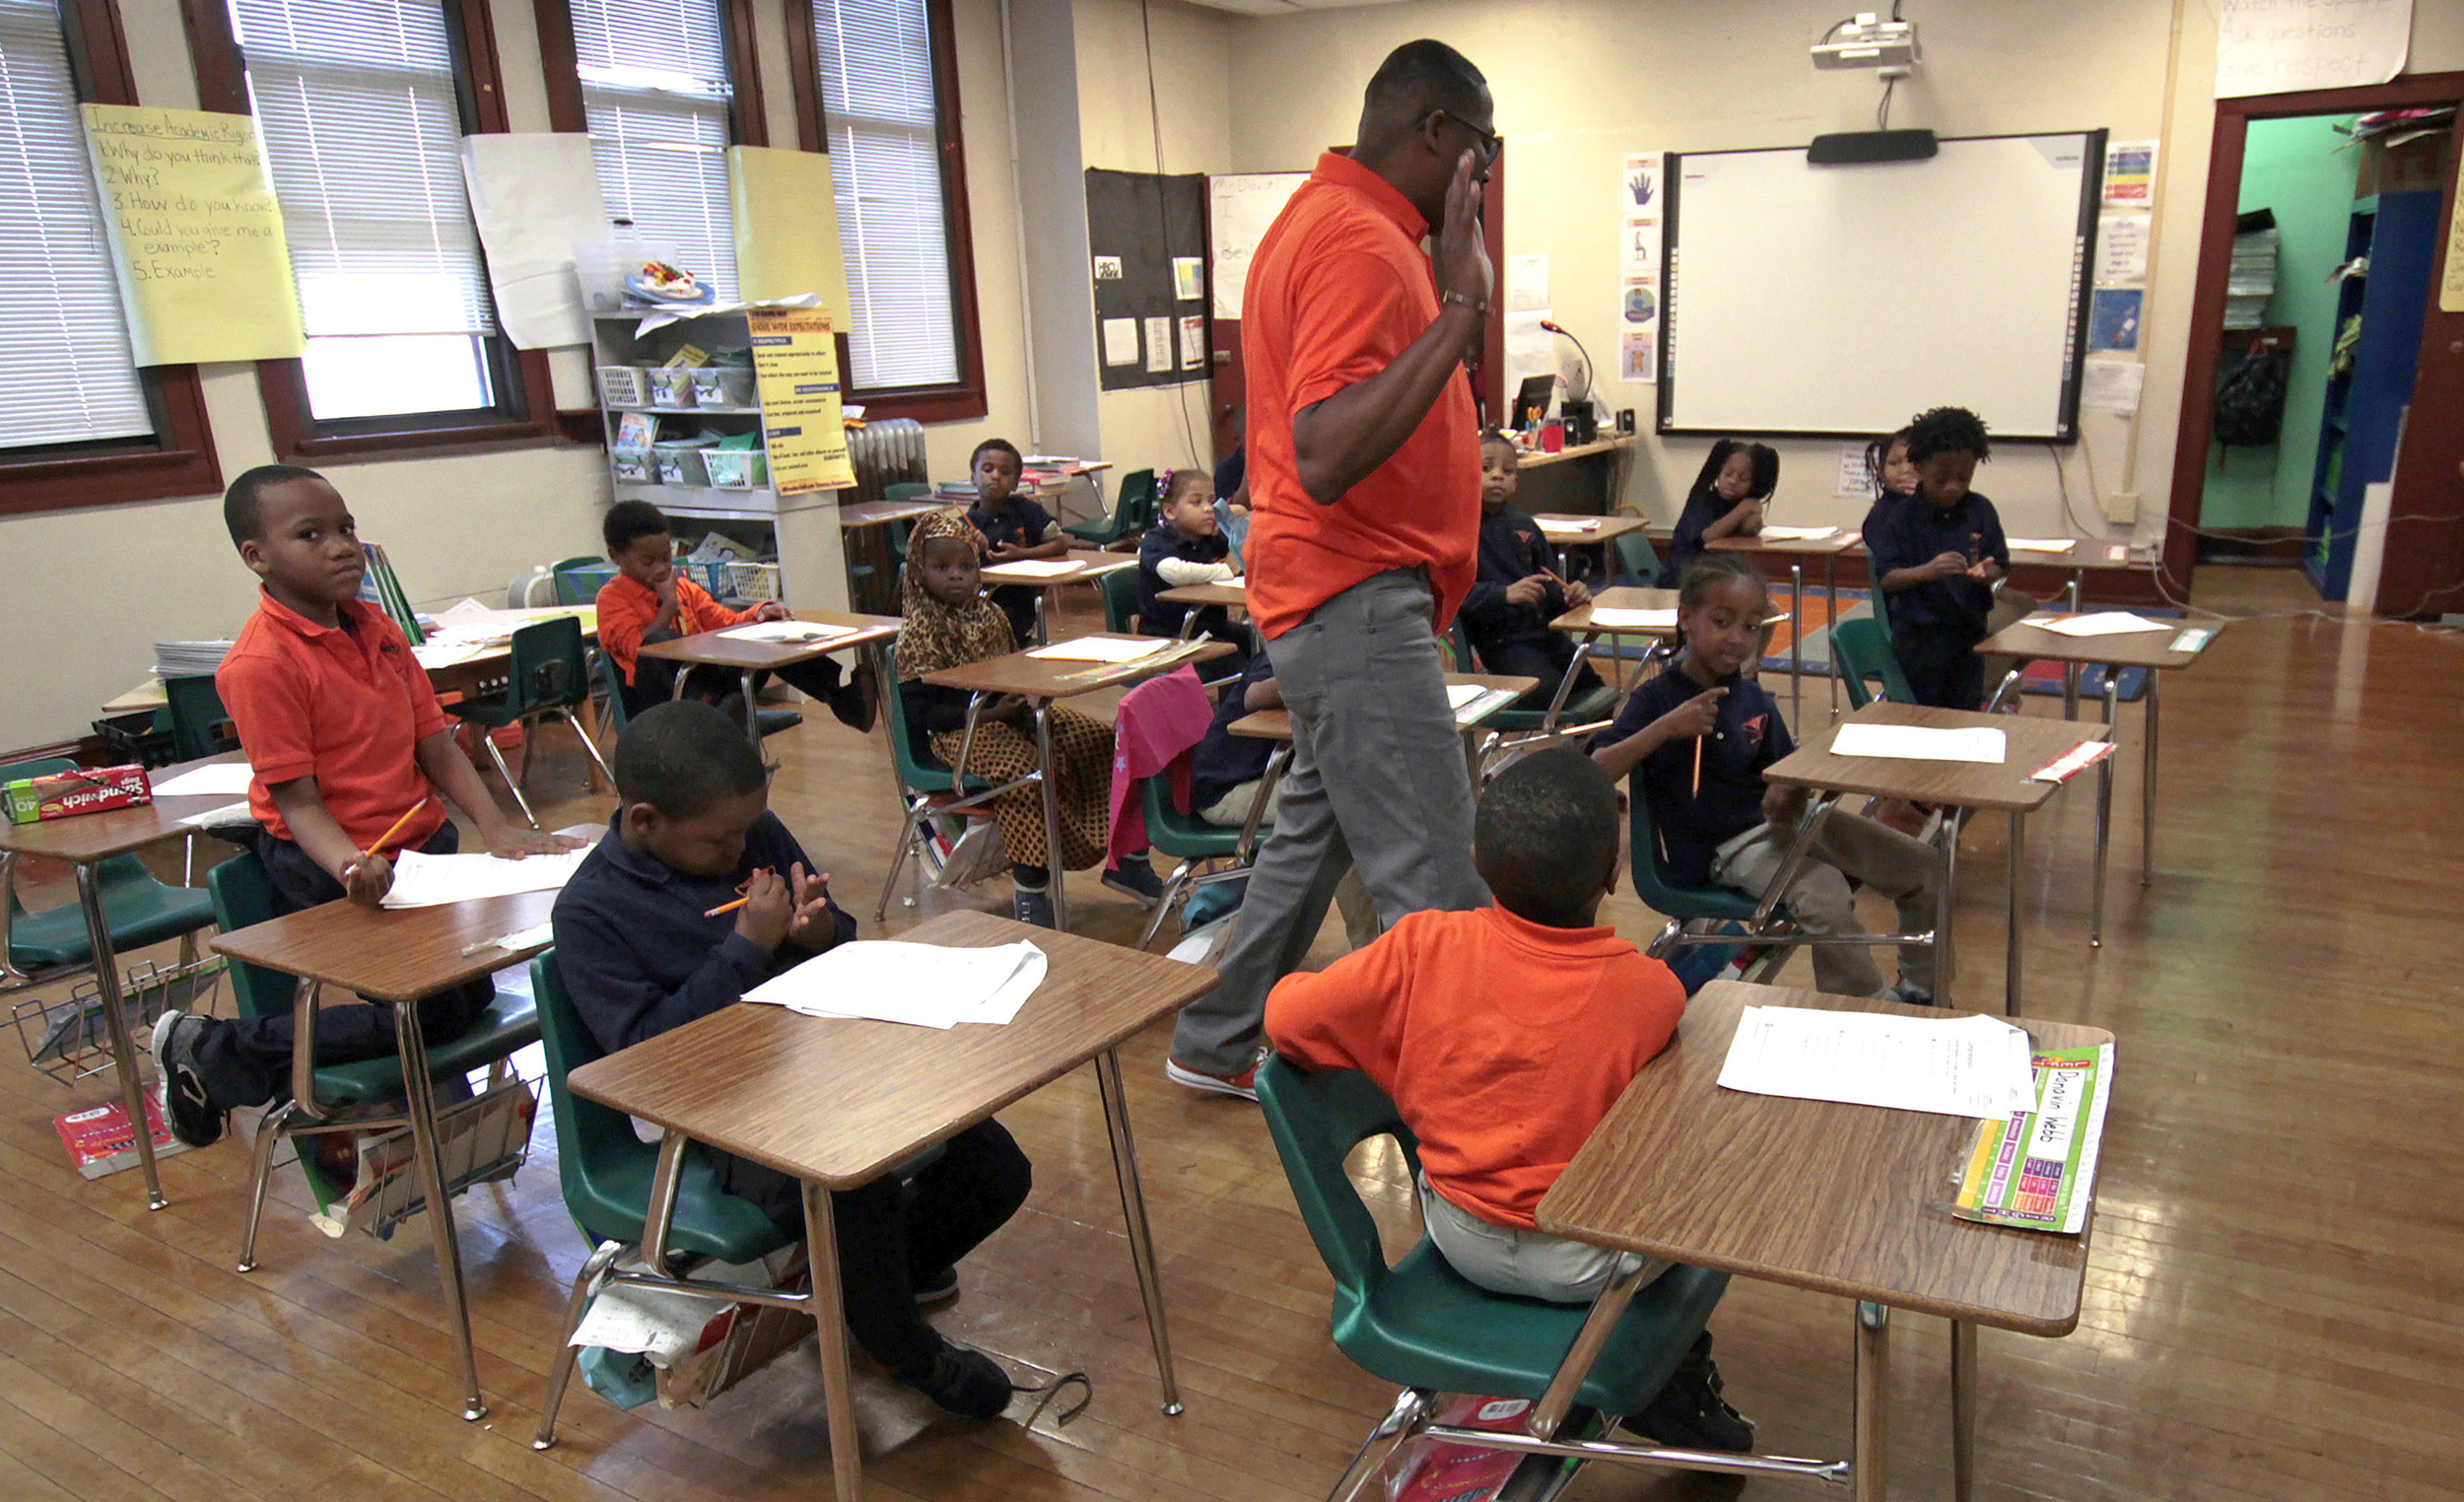 Why Is This Happening?: Investigating school segregation in